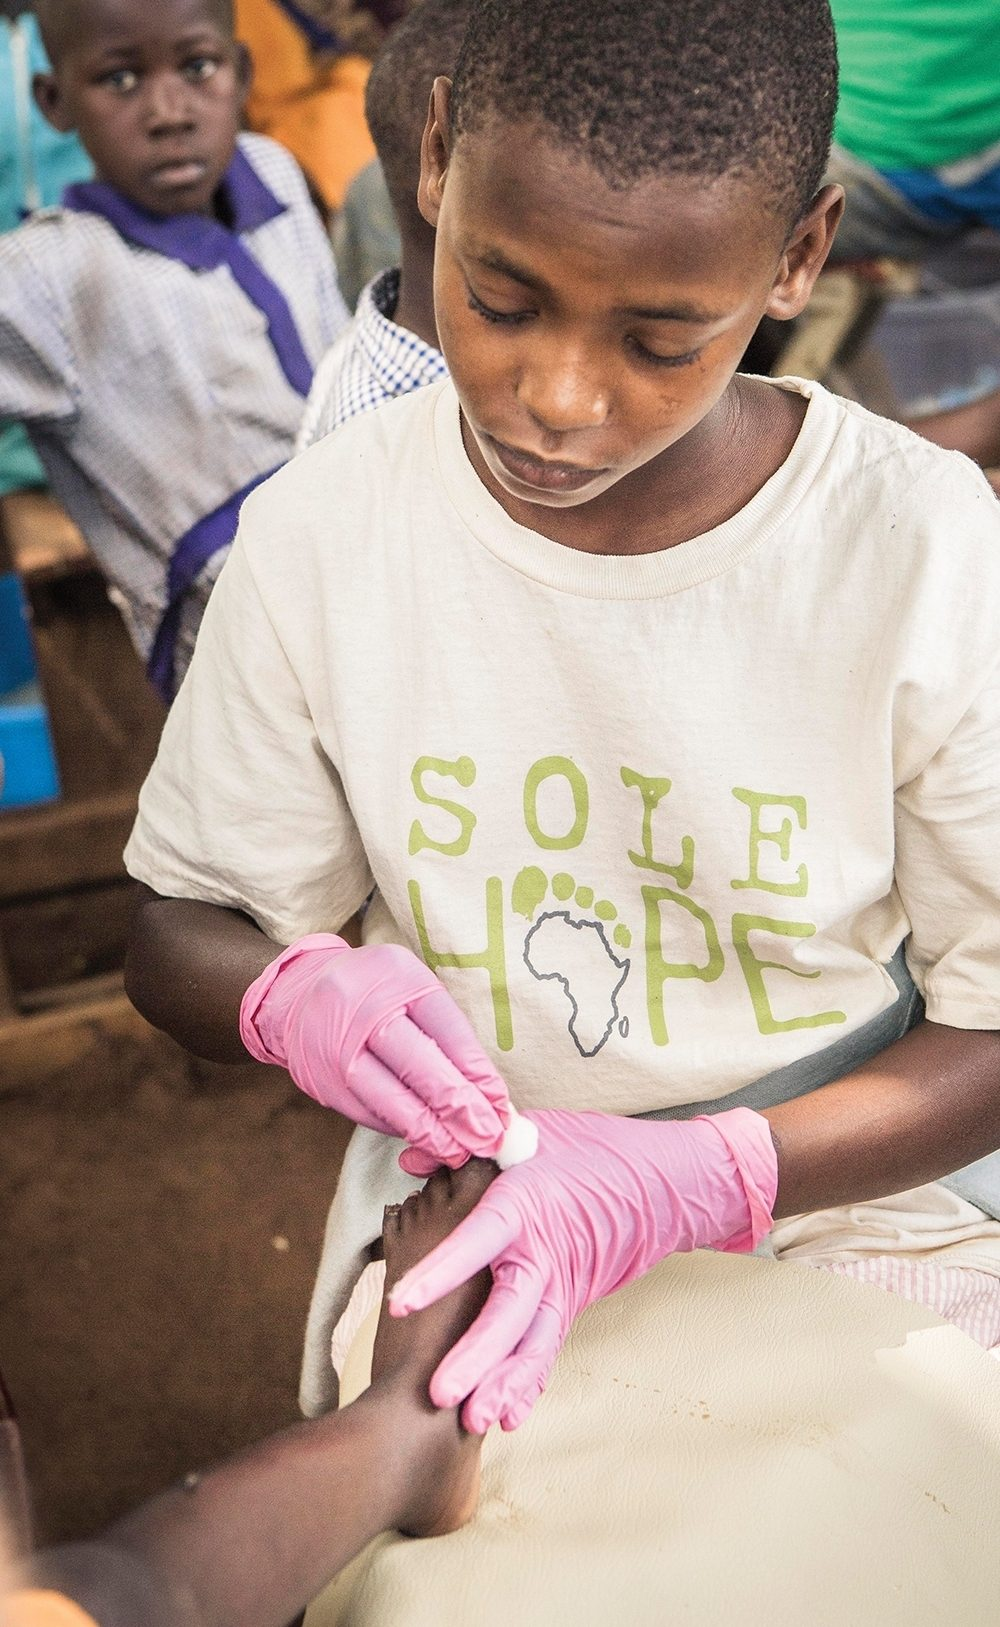 Eleven-year-old Sasha assists at Sole Hope clinics, where she has become an expert at removing jiggers.